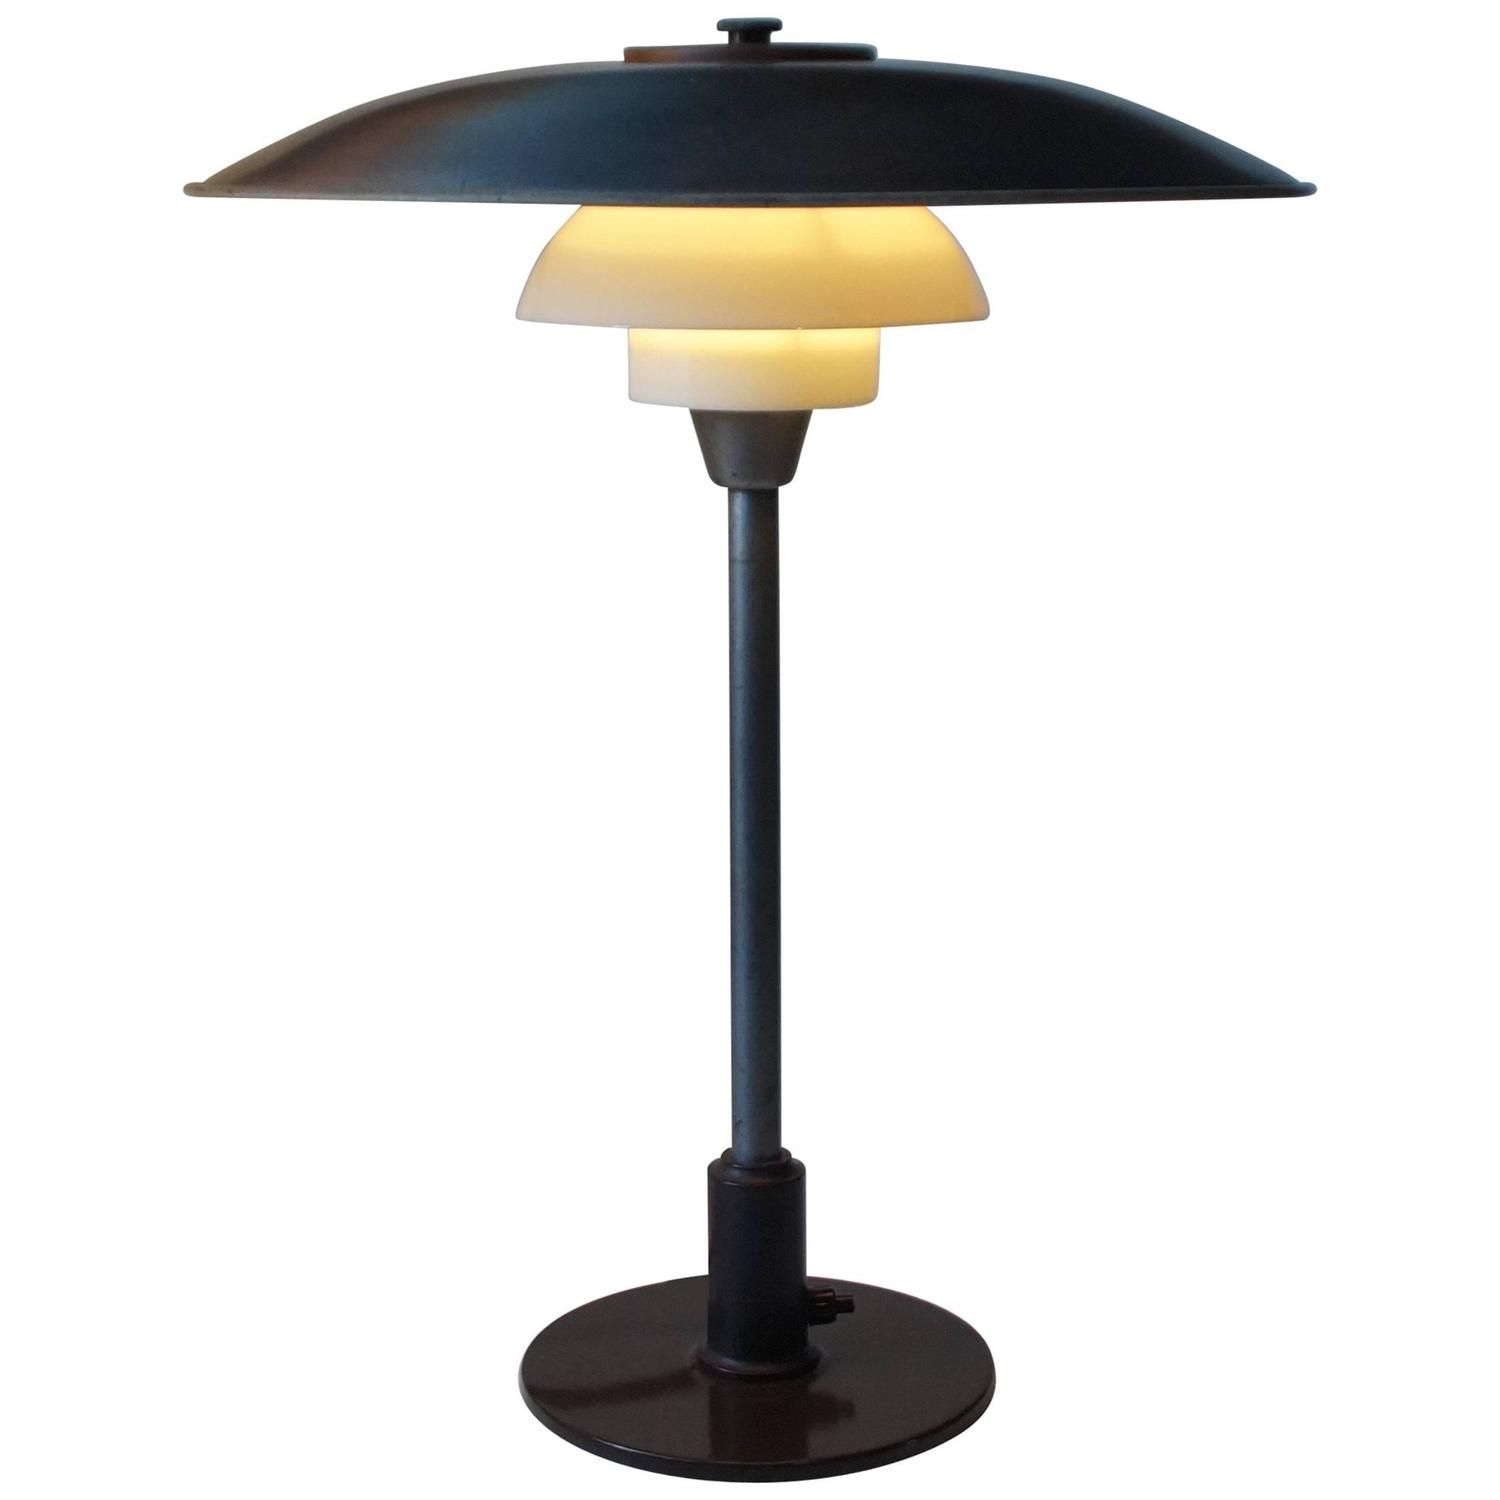 Rare 1940s Ph 3 5 2 5 Table Lamp By Poul Henningsen For Louis Poulsen Denmark Table Lamp Lamp Poul Henningsen